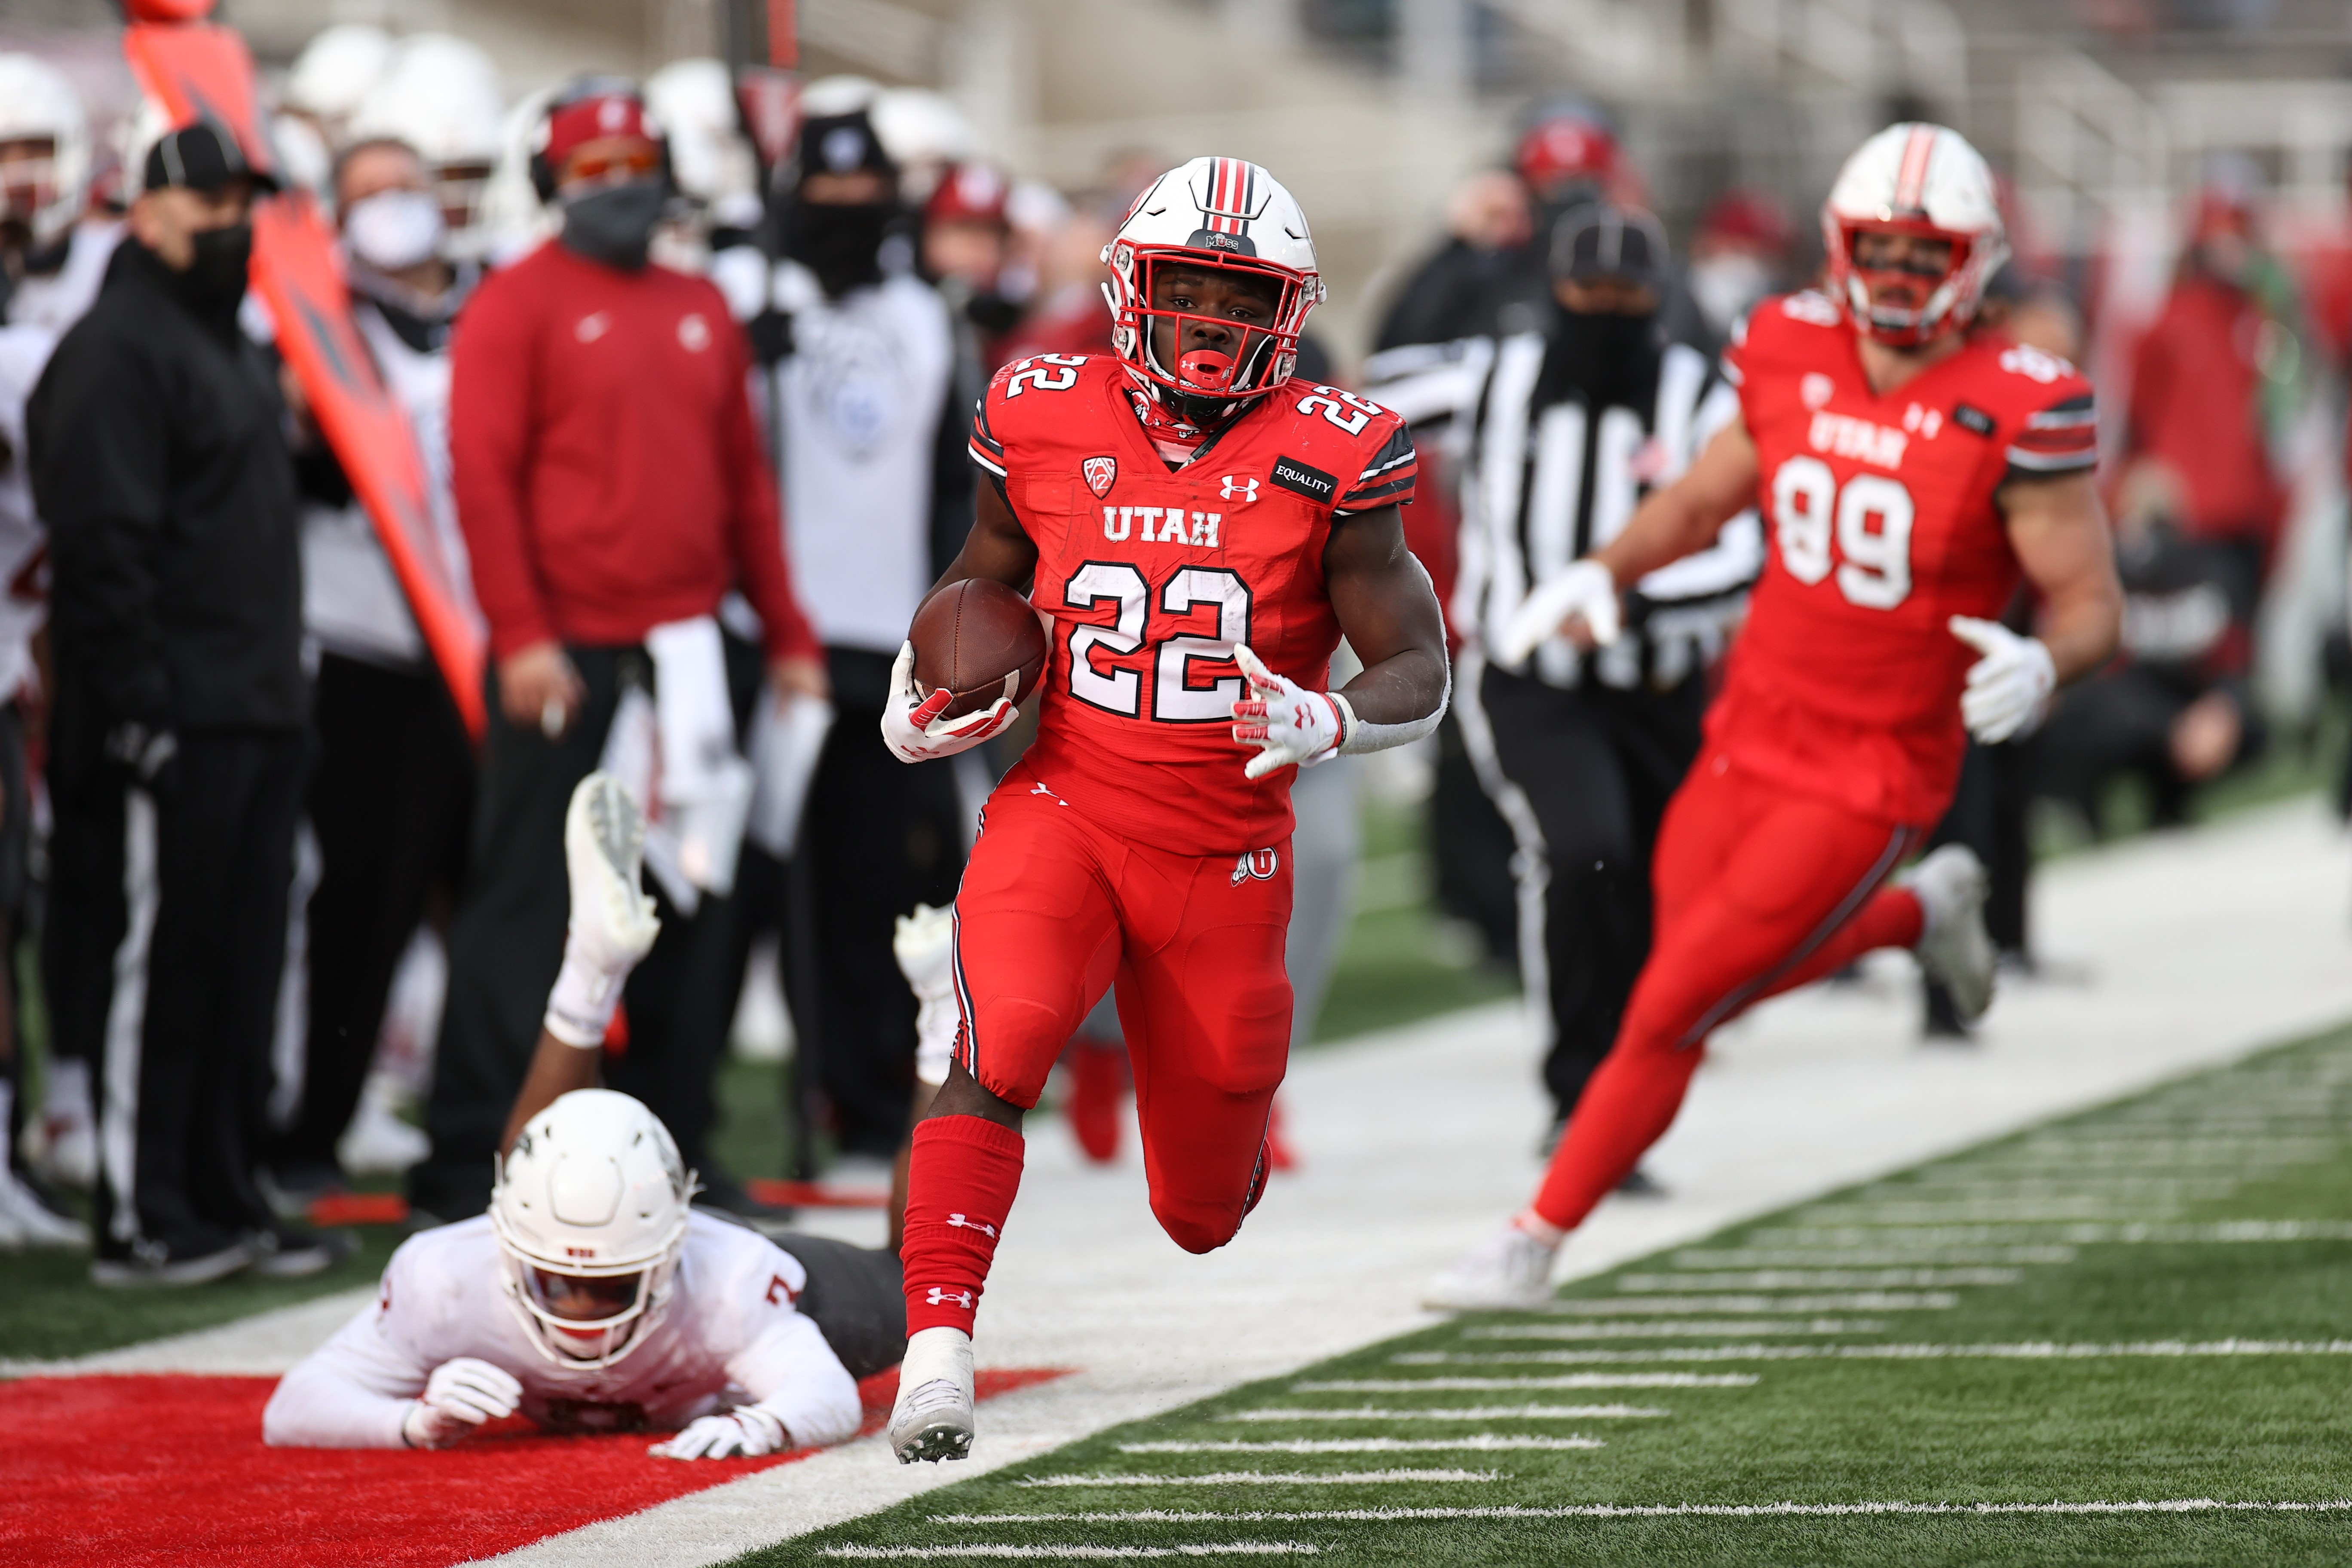 Jordan, 19, a star freshman running back for the Utes, died at a Dallas-area hospital after accidently shooting himself on Christmas day. (Photo: University of Utah)<p></p>